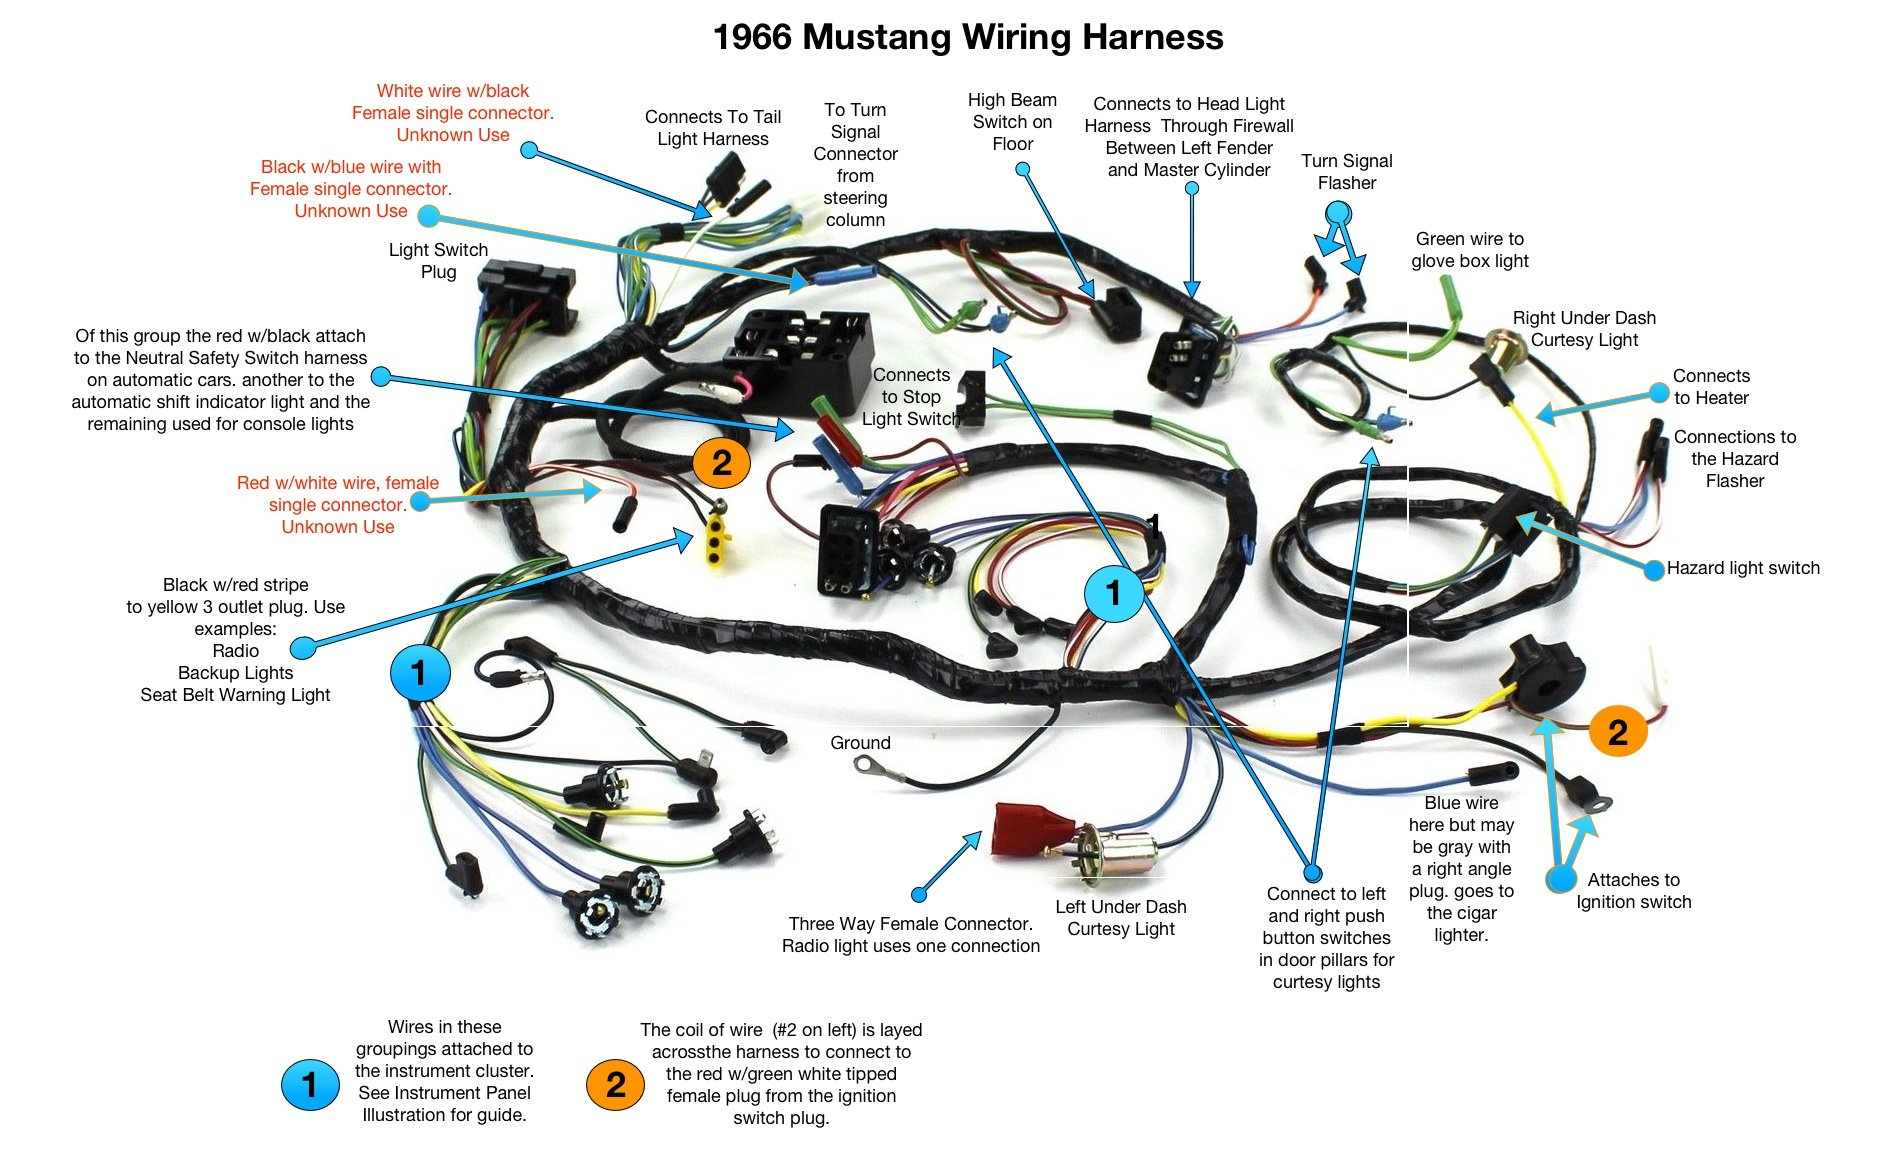 66 wiring harness diagram ford mustang forum rh allfordmustangs com 66 mustang wiring harness diagram 66 mustang wiring harness